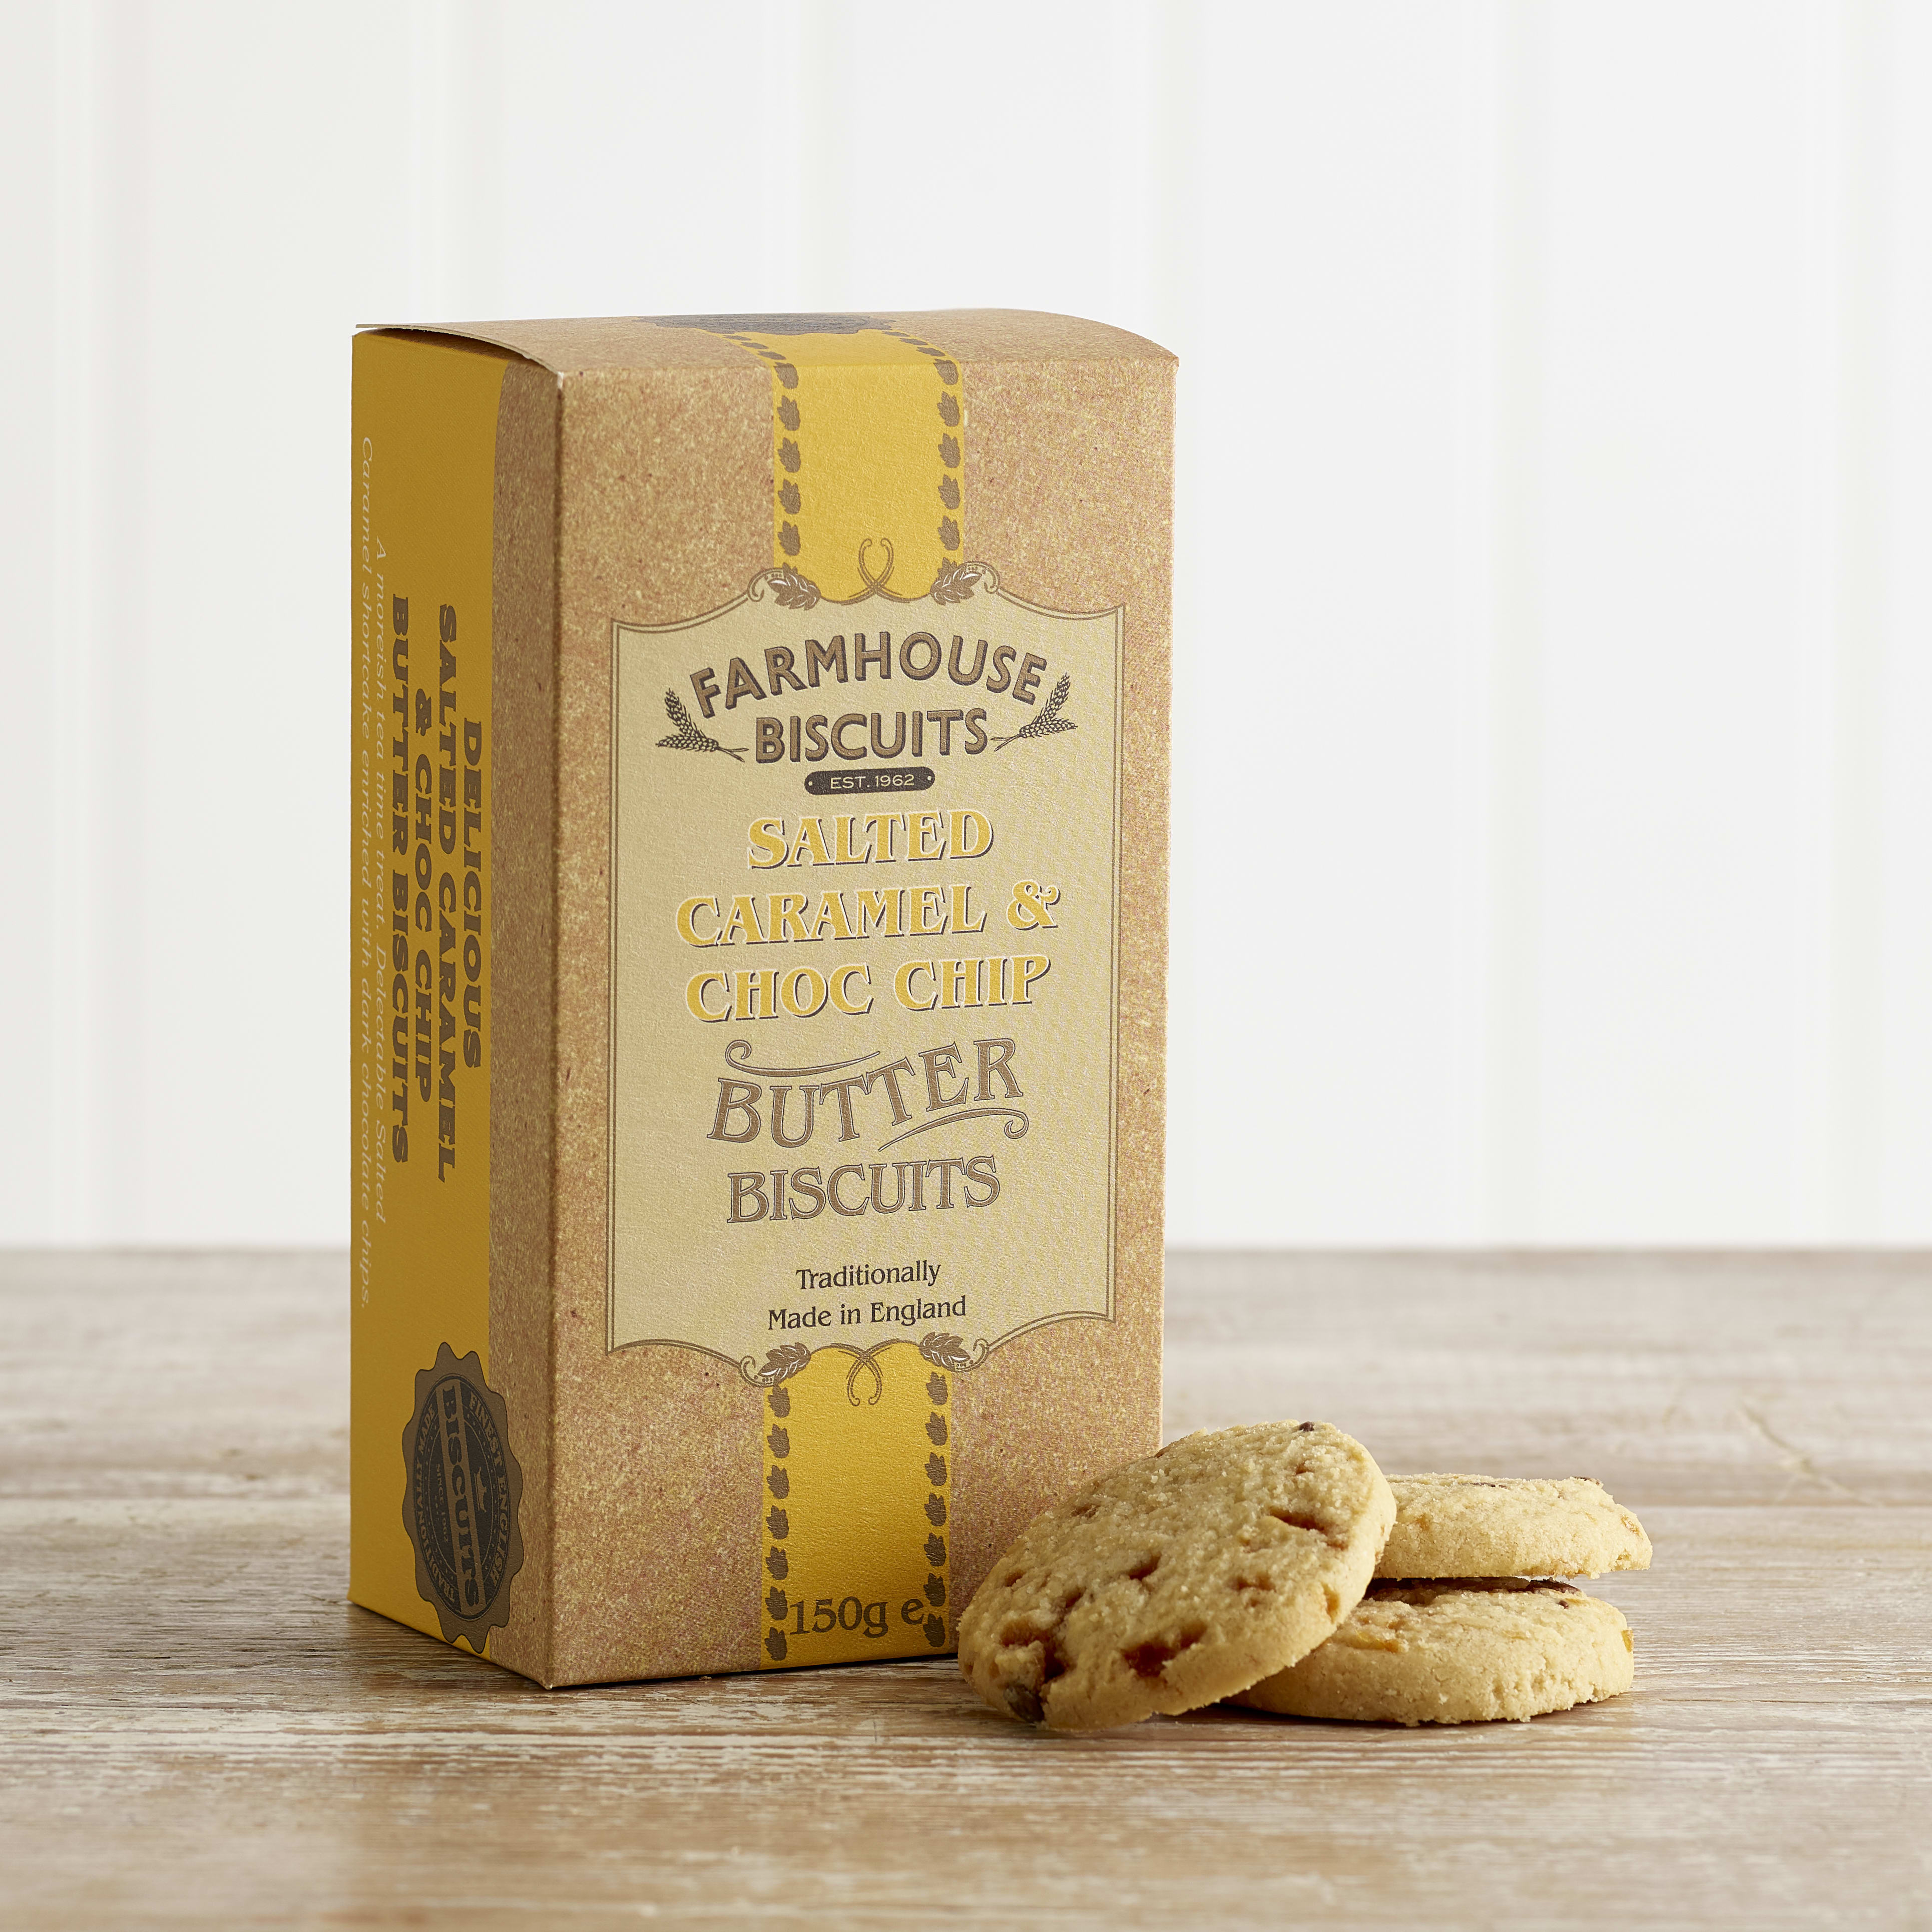 Farmhouse Salted Caramel & Chocolate Chip Biscuits, 150g